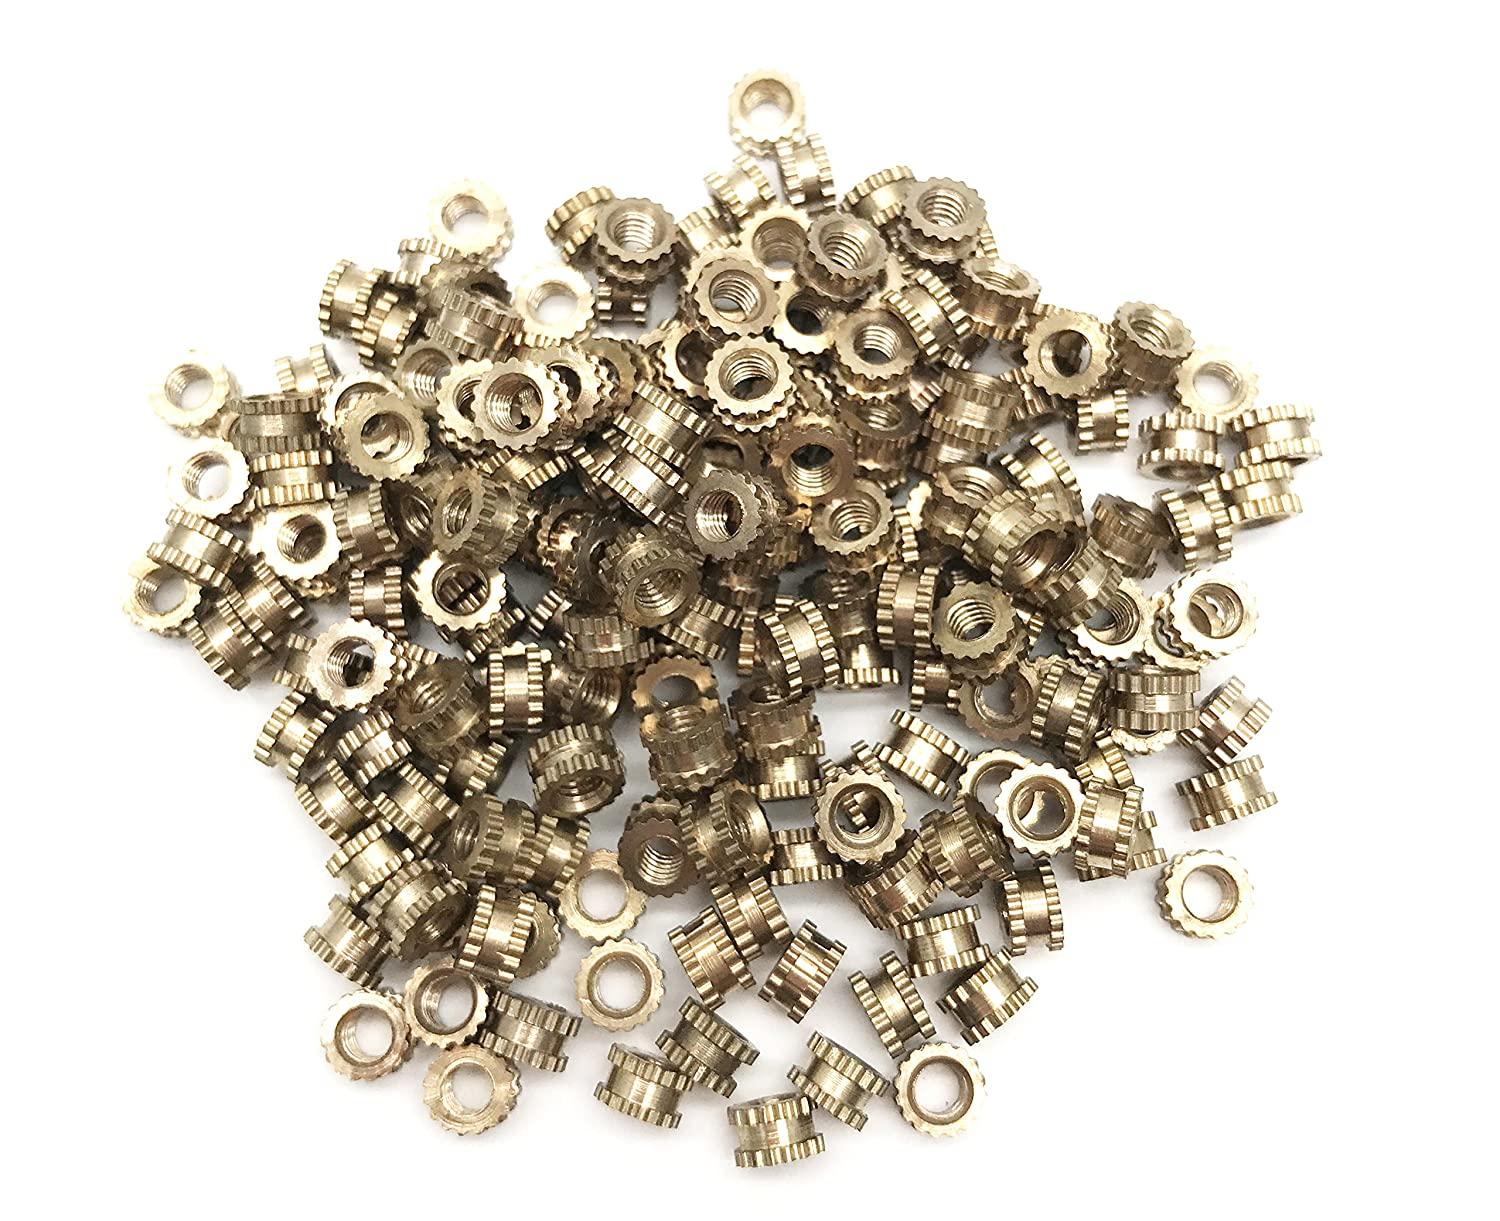 ZXHAO M3 x 3 x 5.3mm Female Thread Brass Cylinder Injection Knurled Threaded Round Insert Embedded Nuts 200 Pcs Foshan Nanhai District Guang-FO Hardware City Exhibition Center 2 building